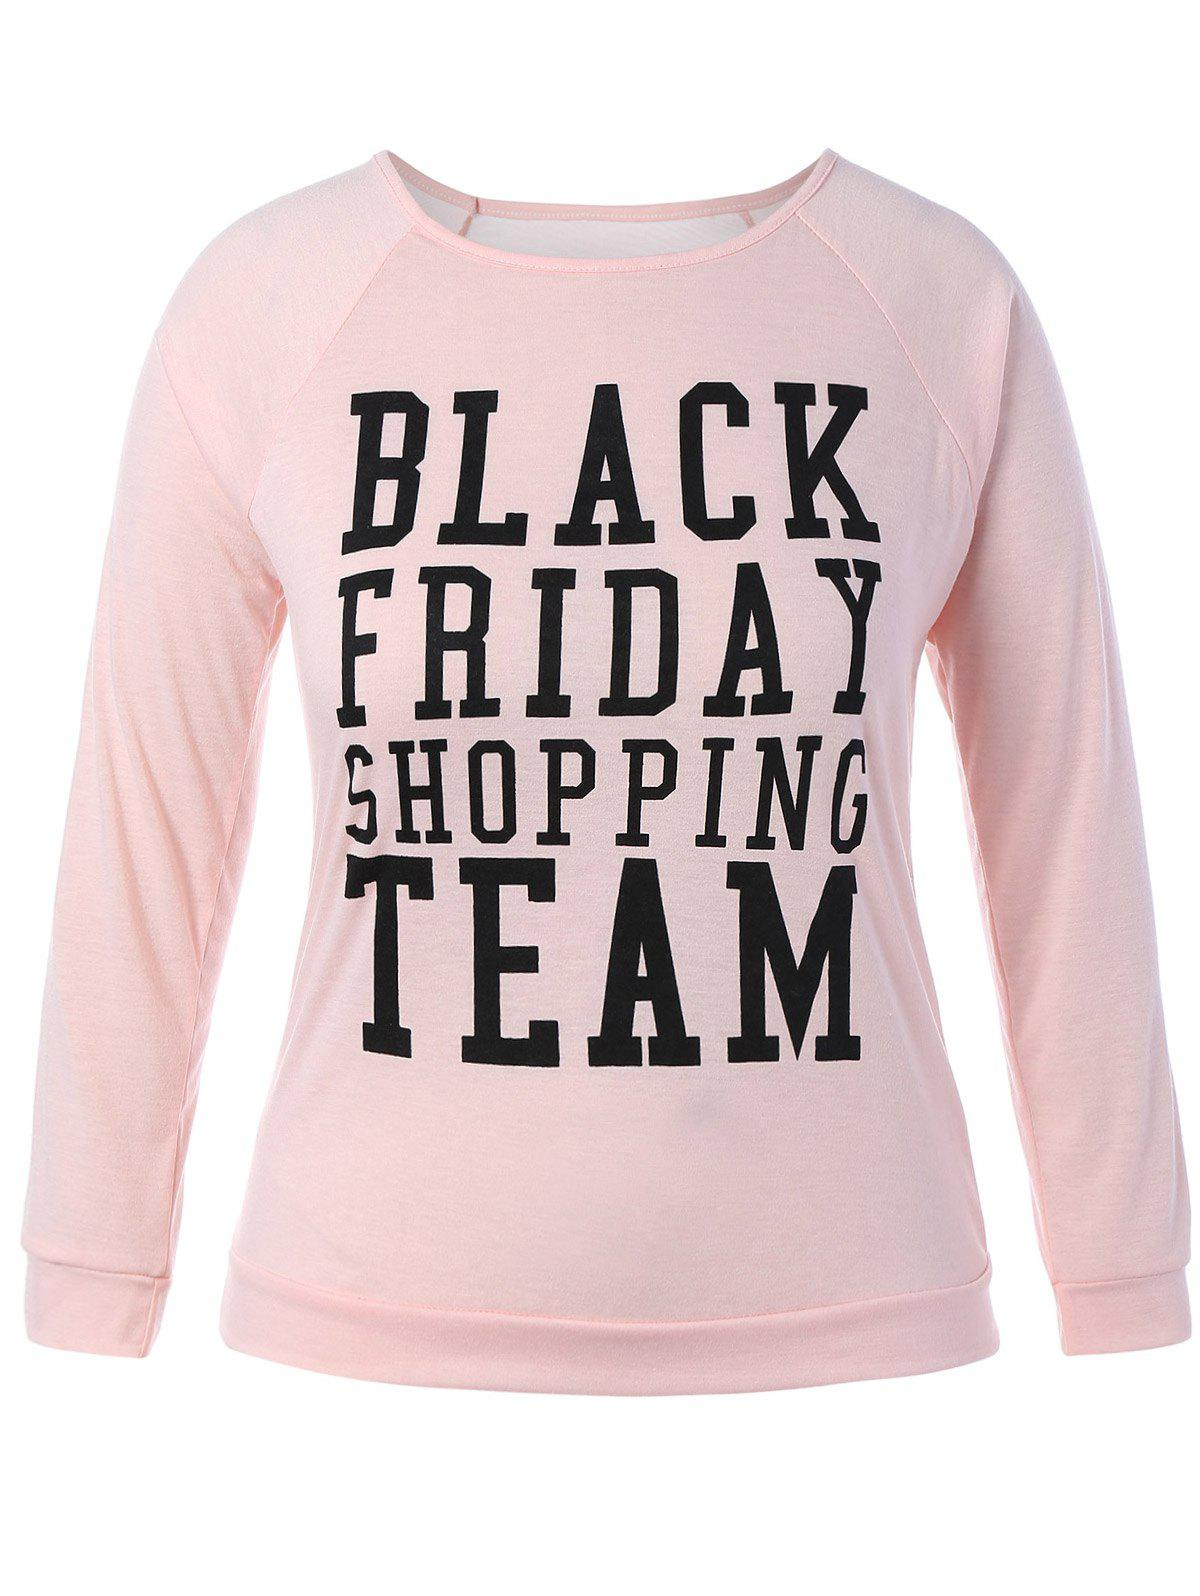 Plus Size Black Friday Long Sleeve Christmas T-Shirt - PINK L